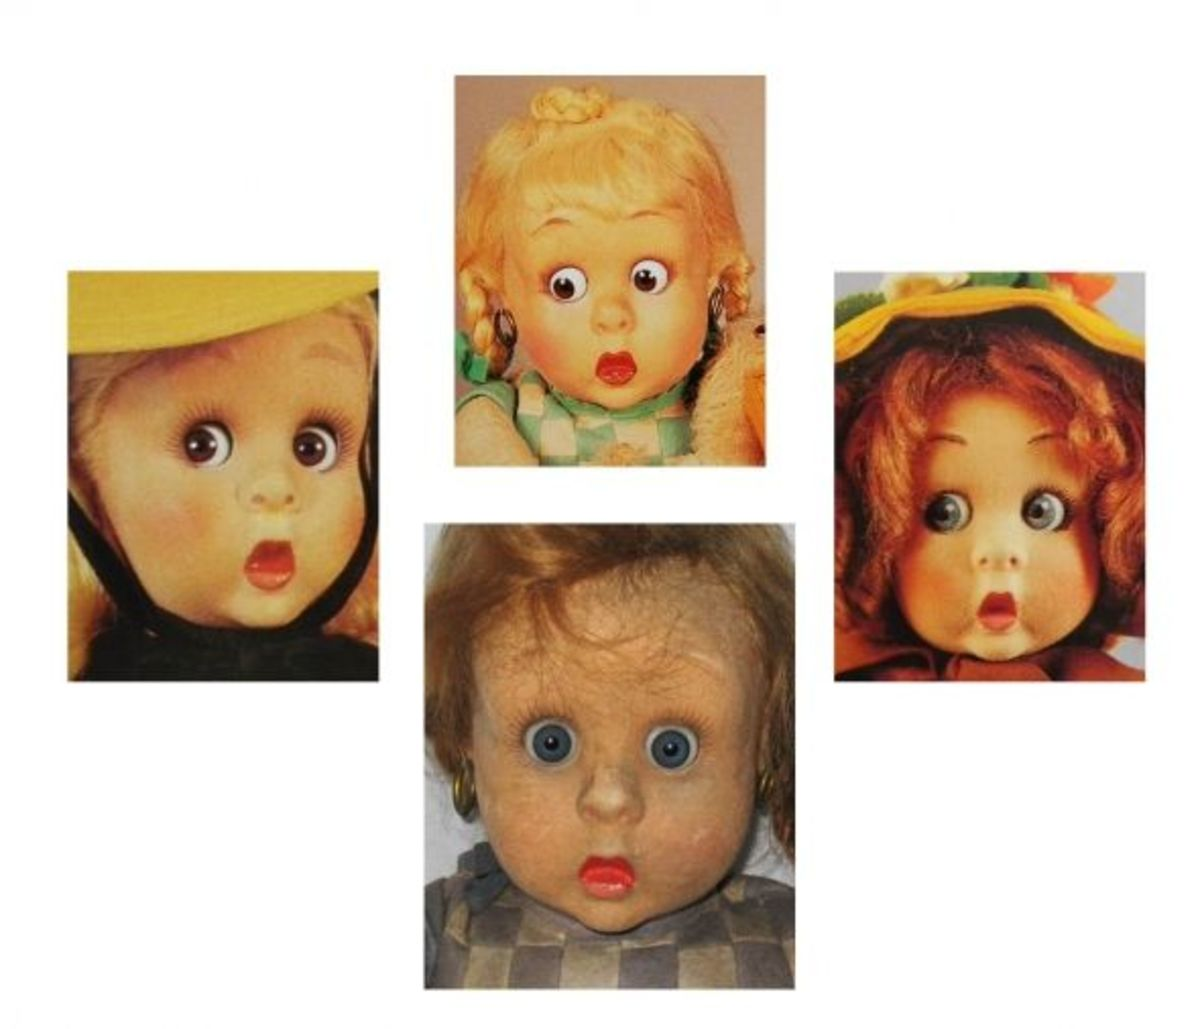 Some of the googly-eyed dolls have movable eyes.